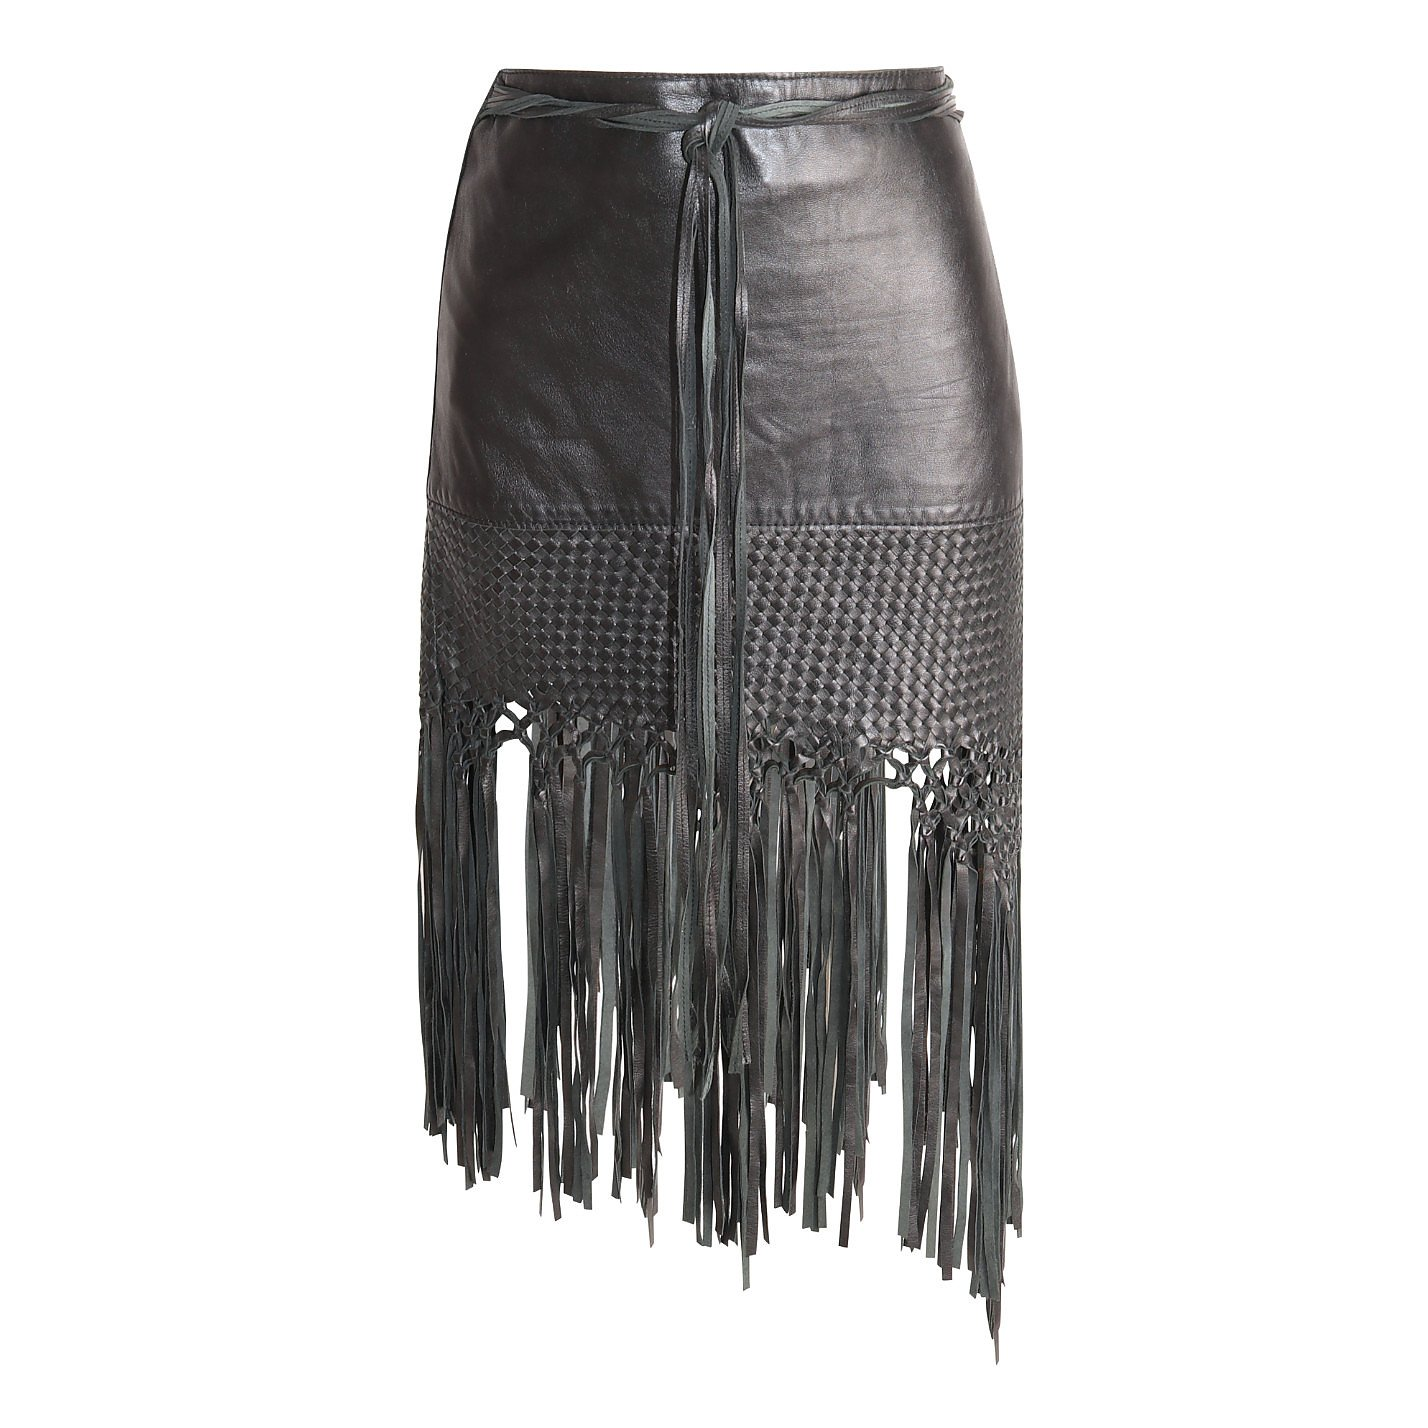 Vintage Leather Fringe Skirt